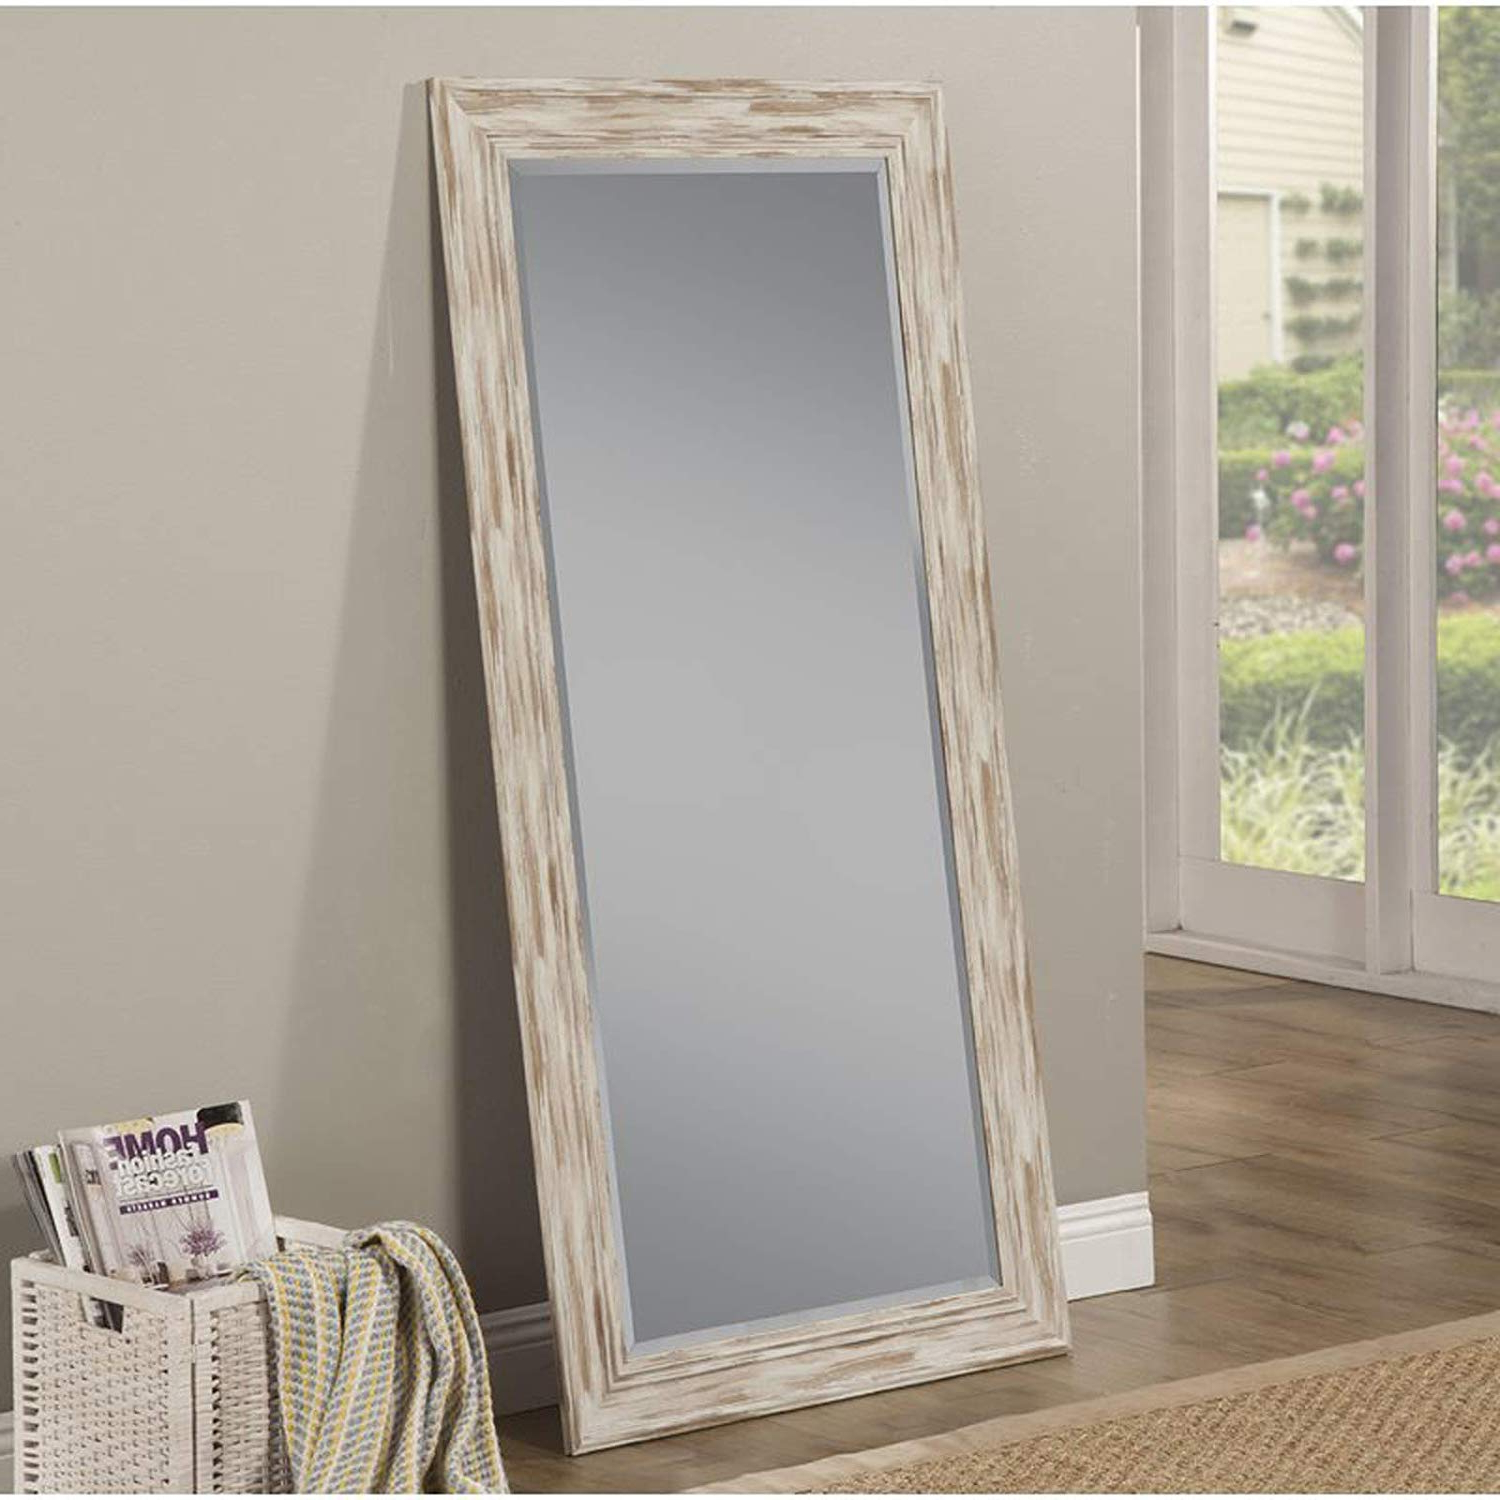 Full Length Wall Mirrors Intended For Most Popular Full Length Wall Mirror – Rustic Rectangular Shape Horizontal & Vertical Mirror – Can Be Use In Living Room, Bedroom, Entryway Or Bathroom (antique (View 6 of 20)